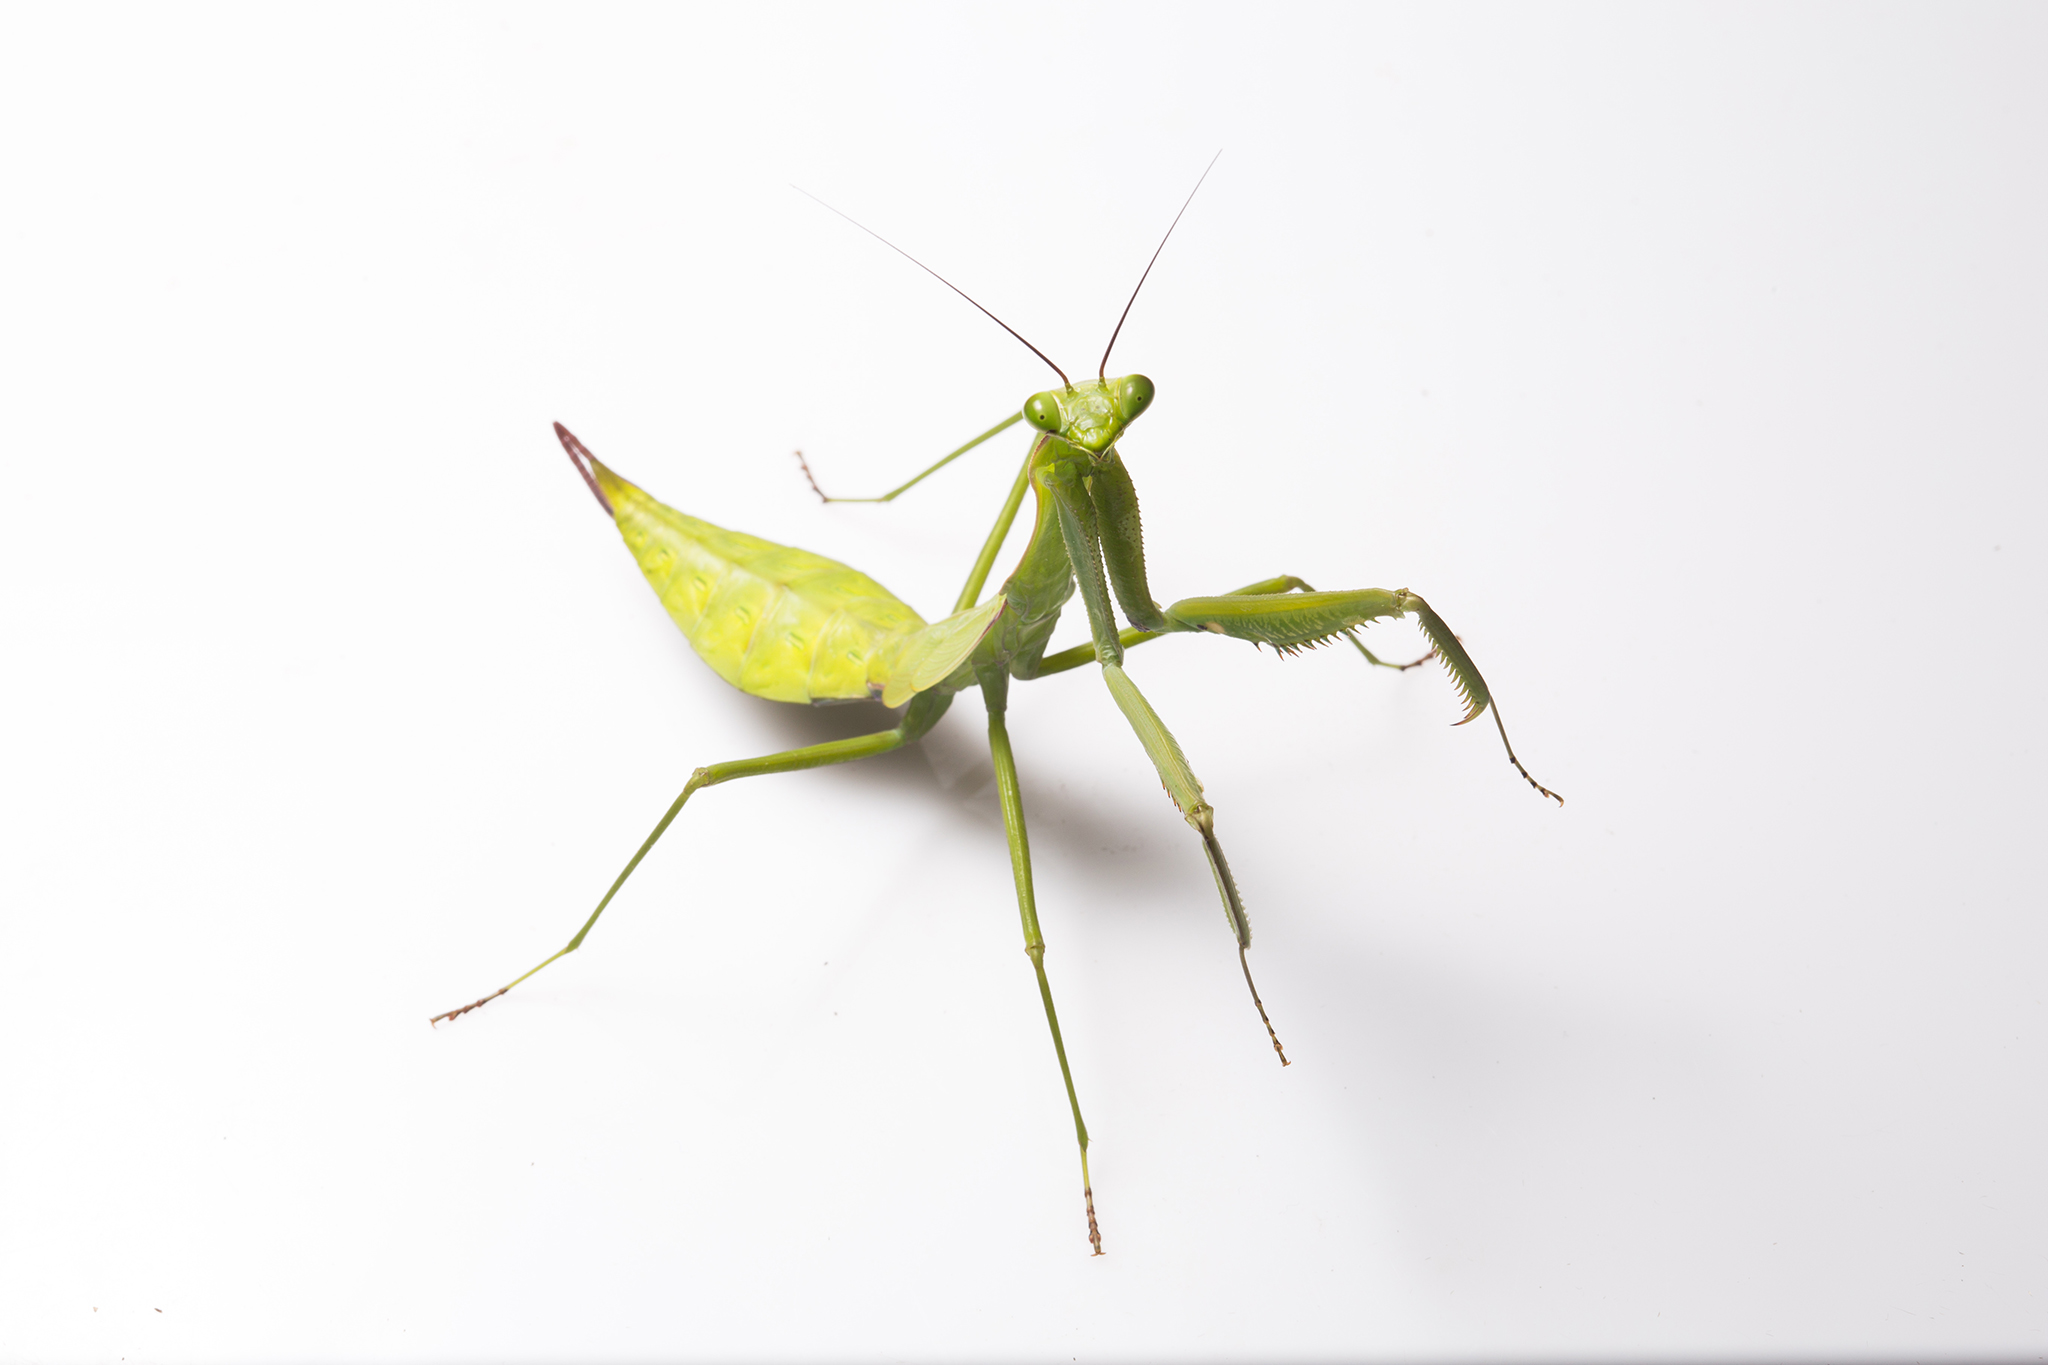 A praying mantis (Macromantis hyalina) is one of hundreds of insect species commonly encountered at night in Yasuní.